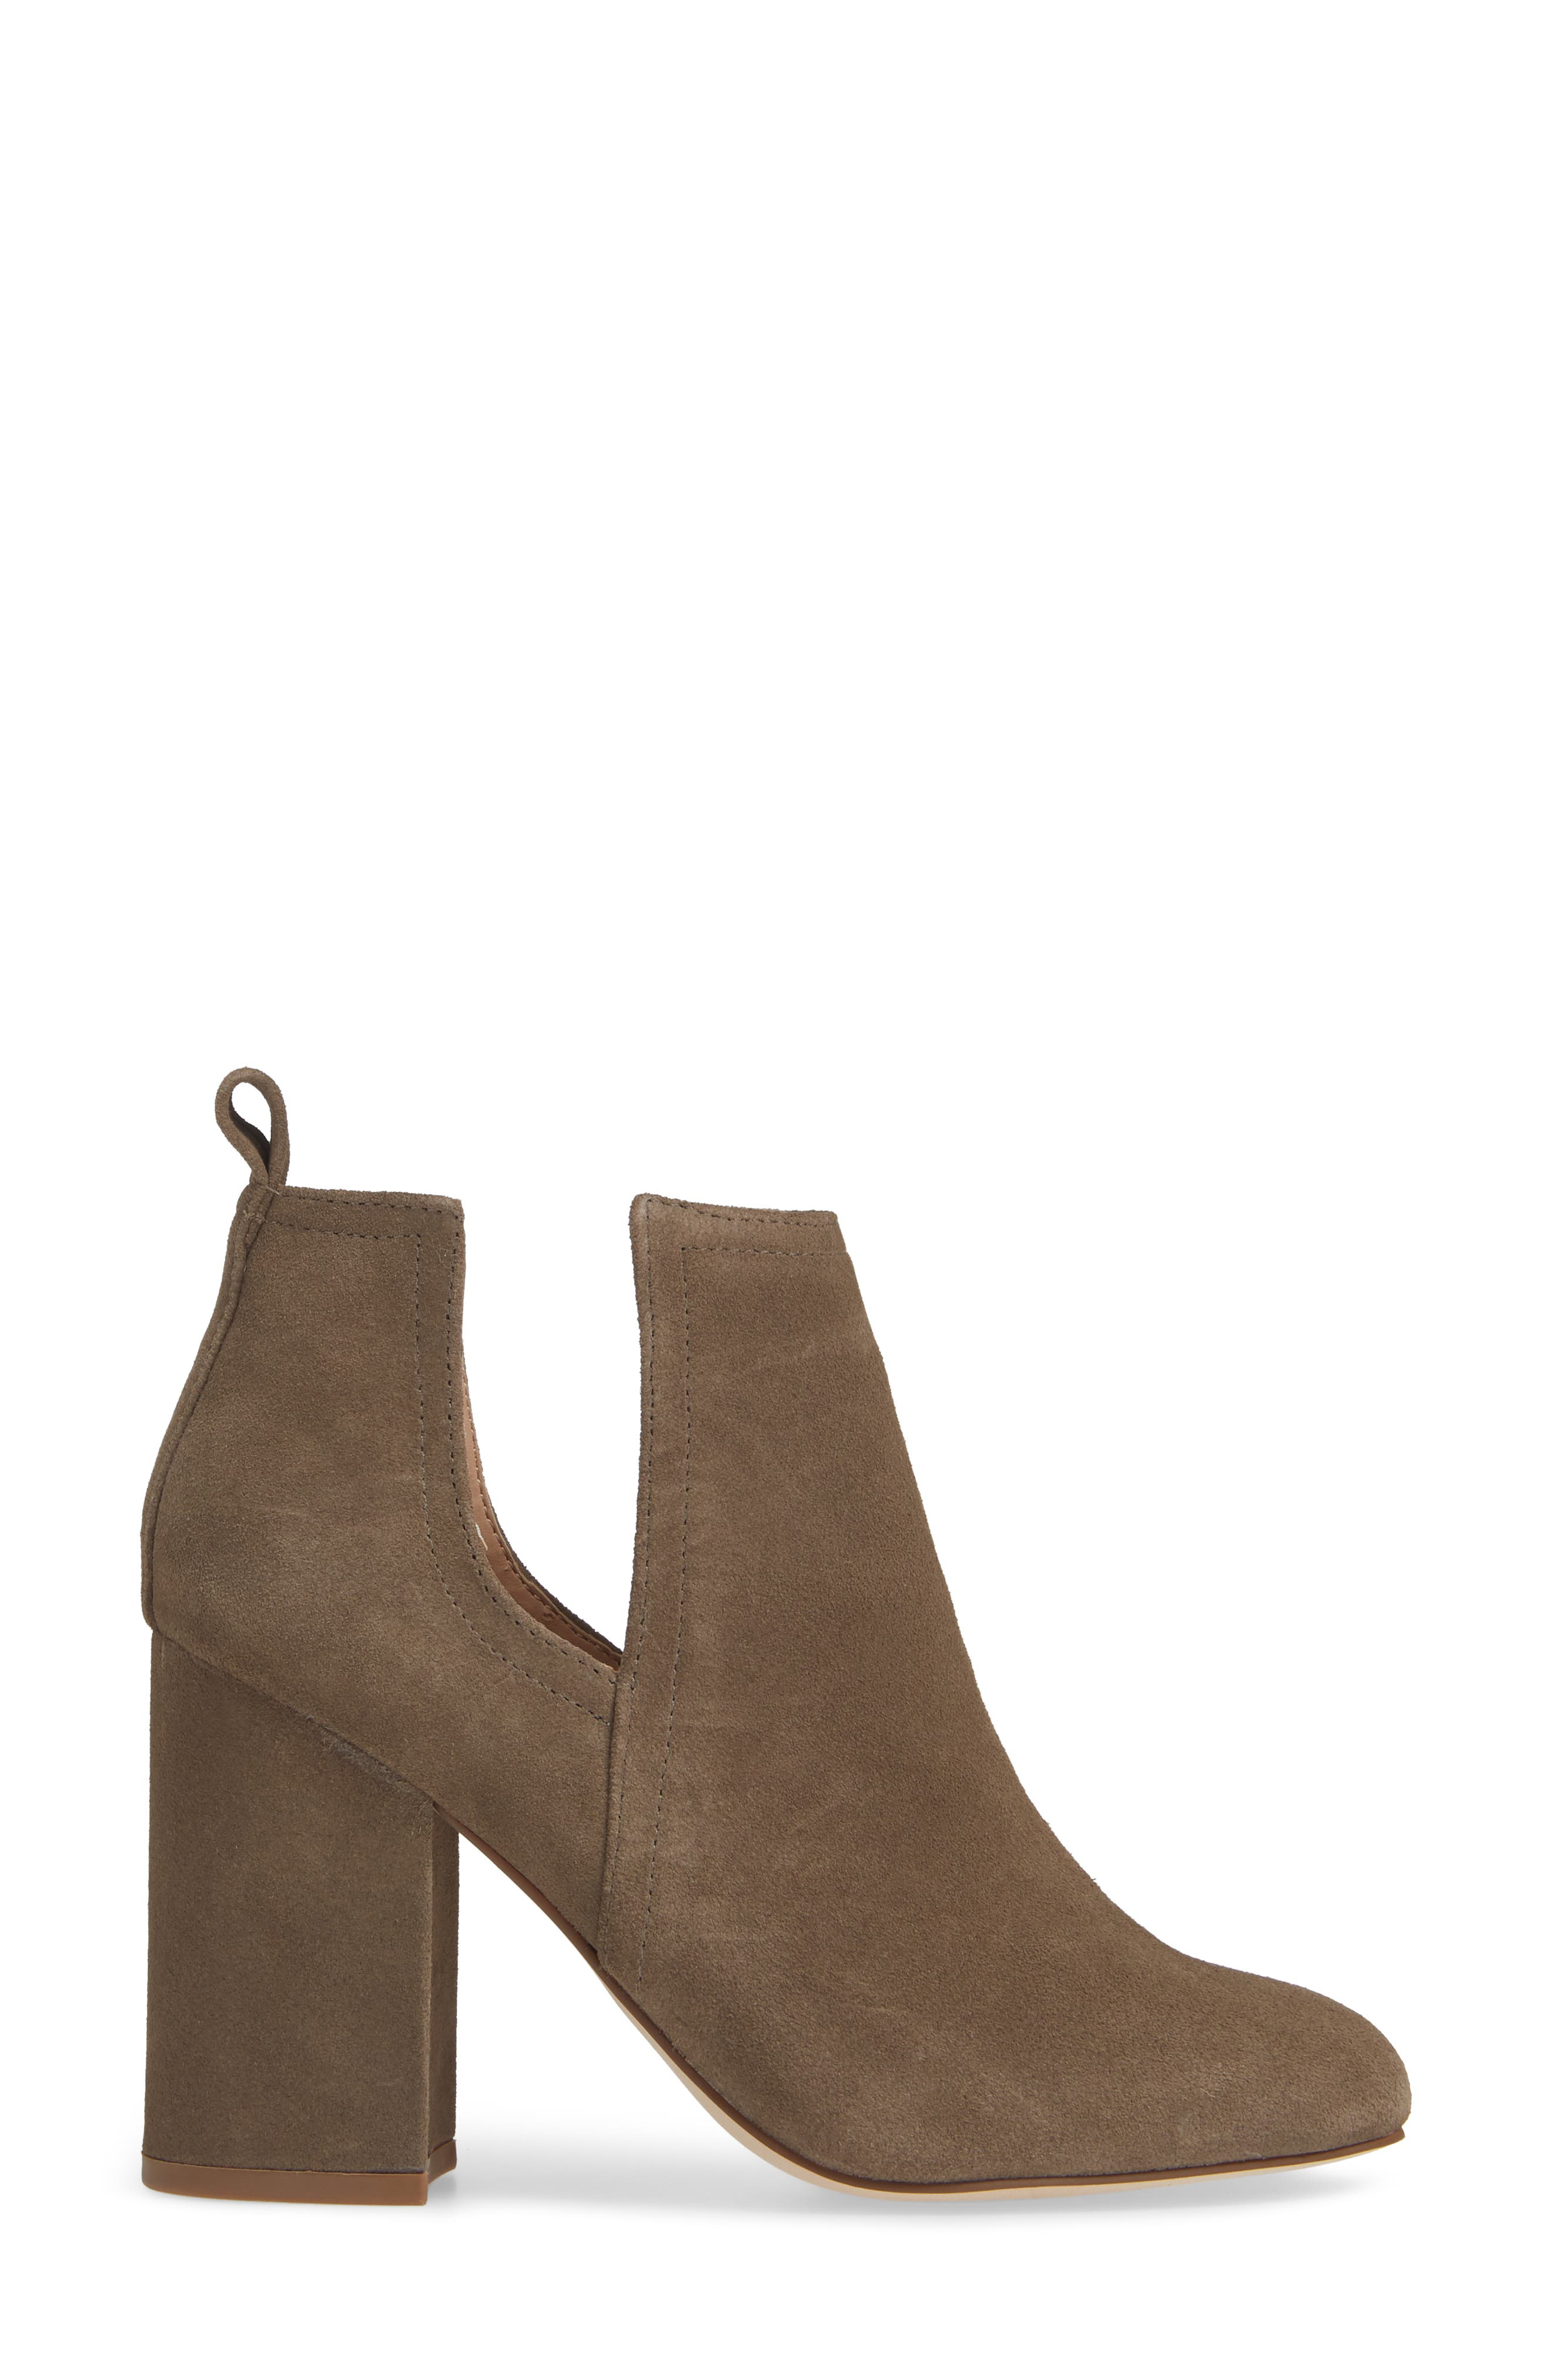 Nayna Bootie,                             Alternate thumbnail 3, color,                             DARK TAUPE